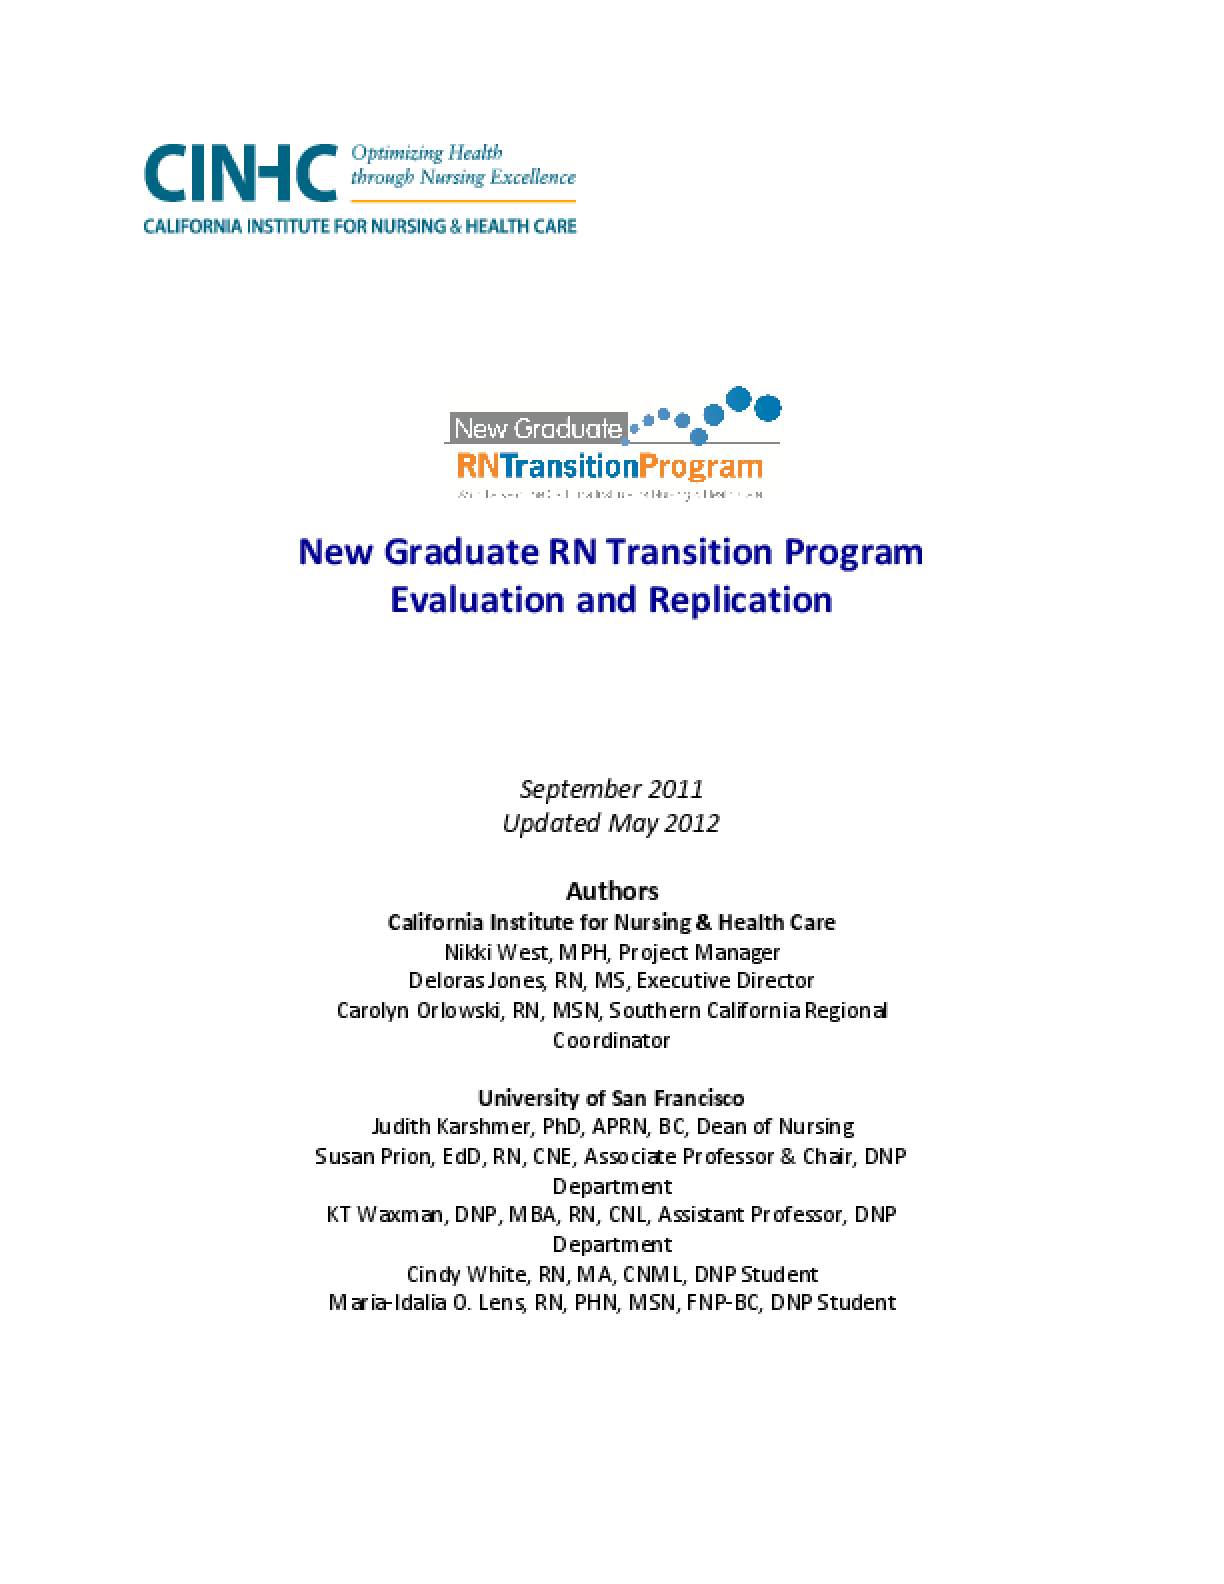 New Graduate RN Transition Program Evaluation and Replication